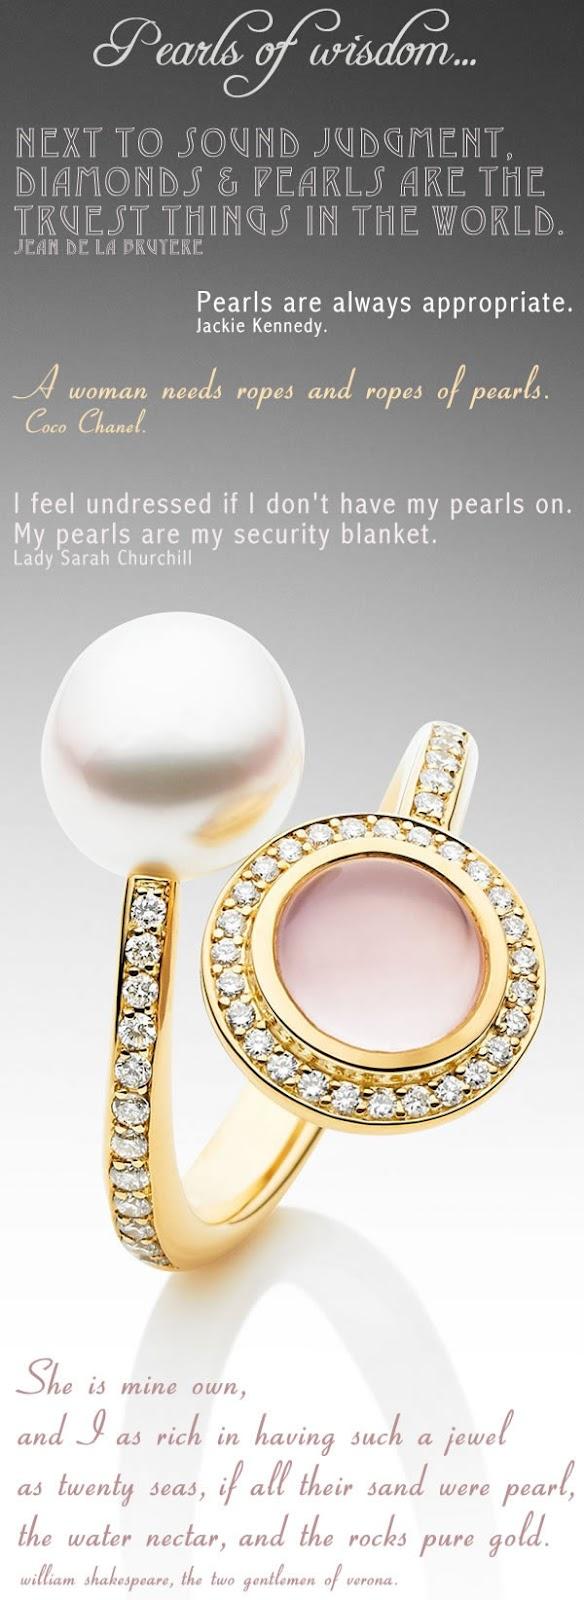 Pearls quote #2